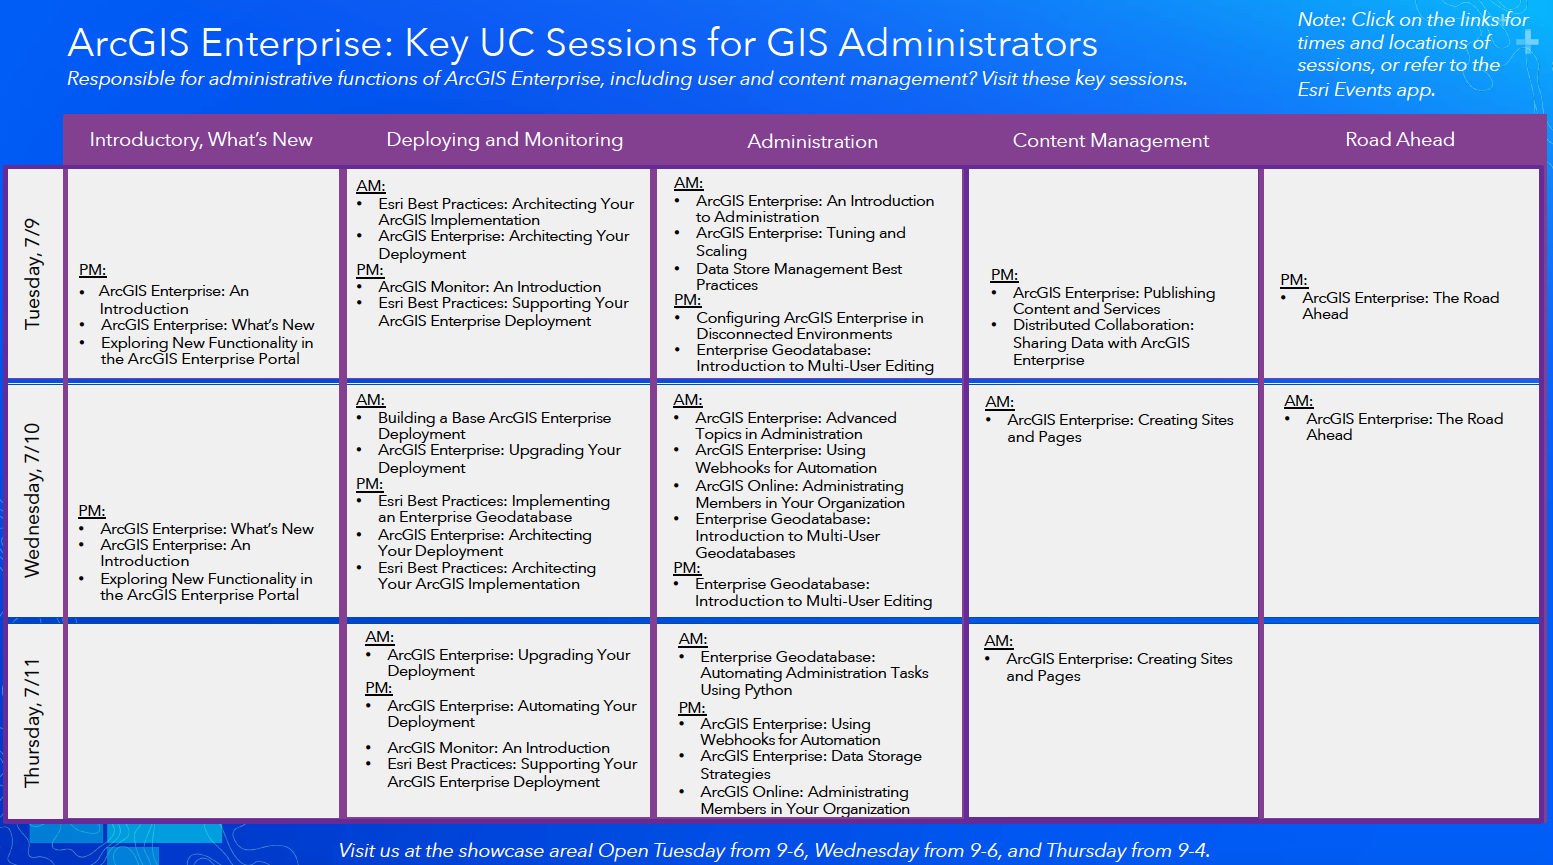 Come visit the ArcGIS Enterprise sessions at the Esri 2019 User Conference.